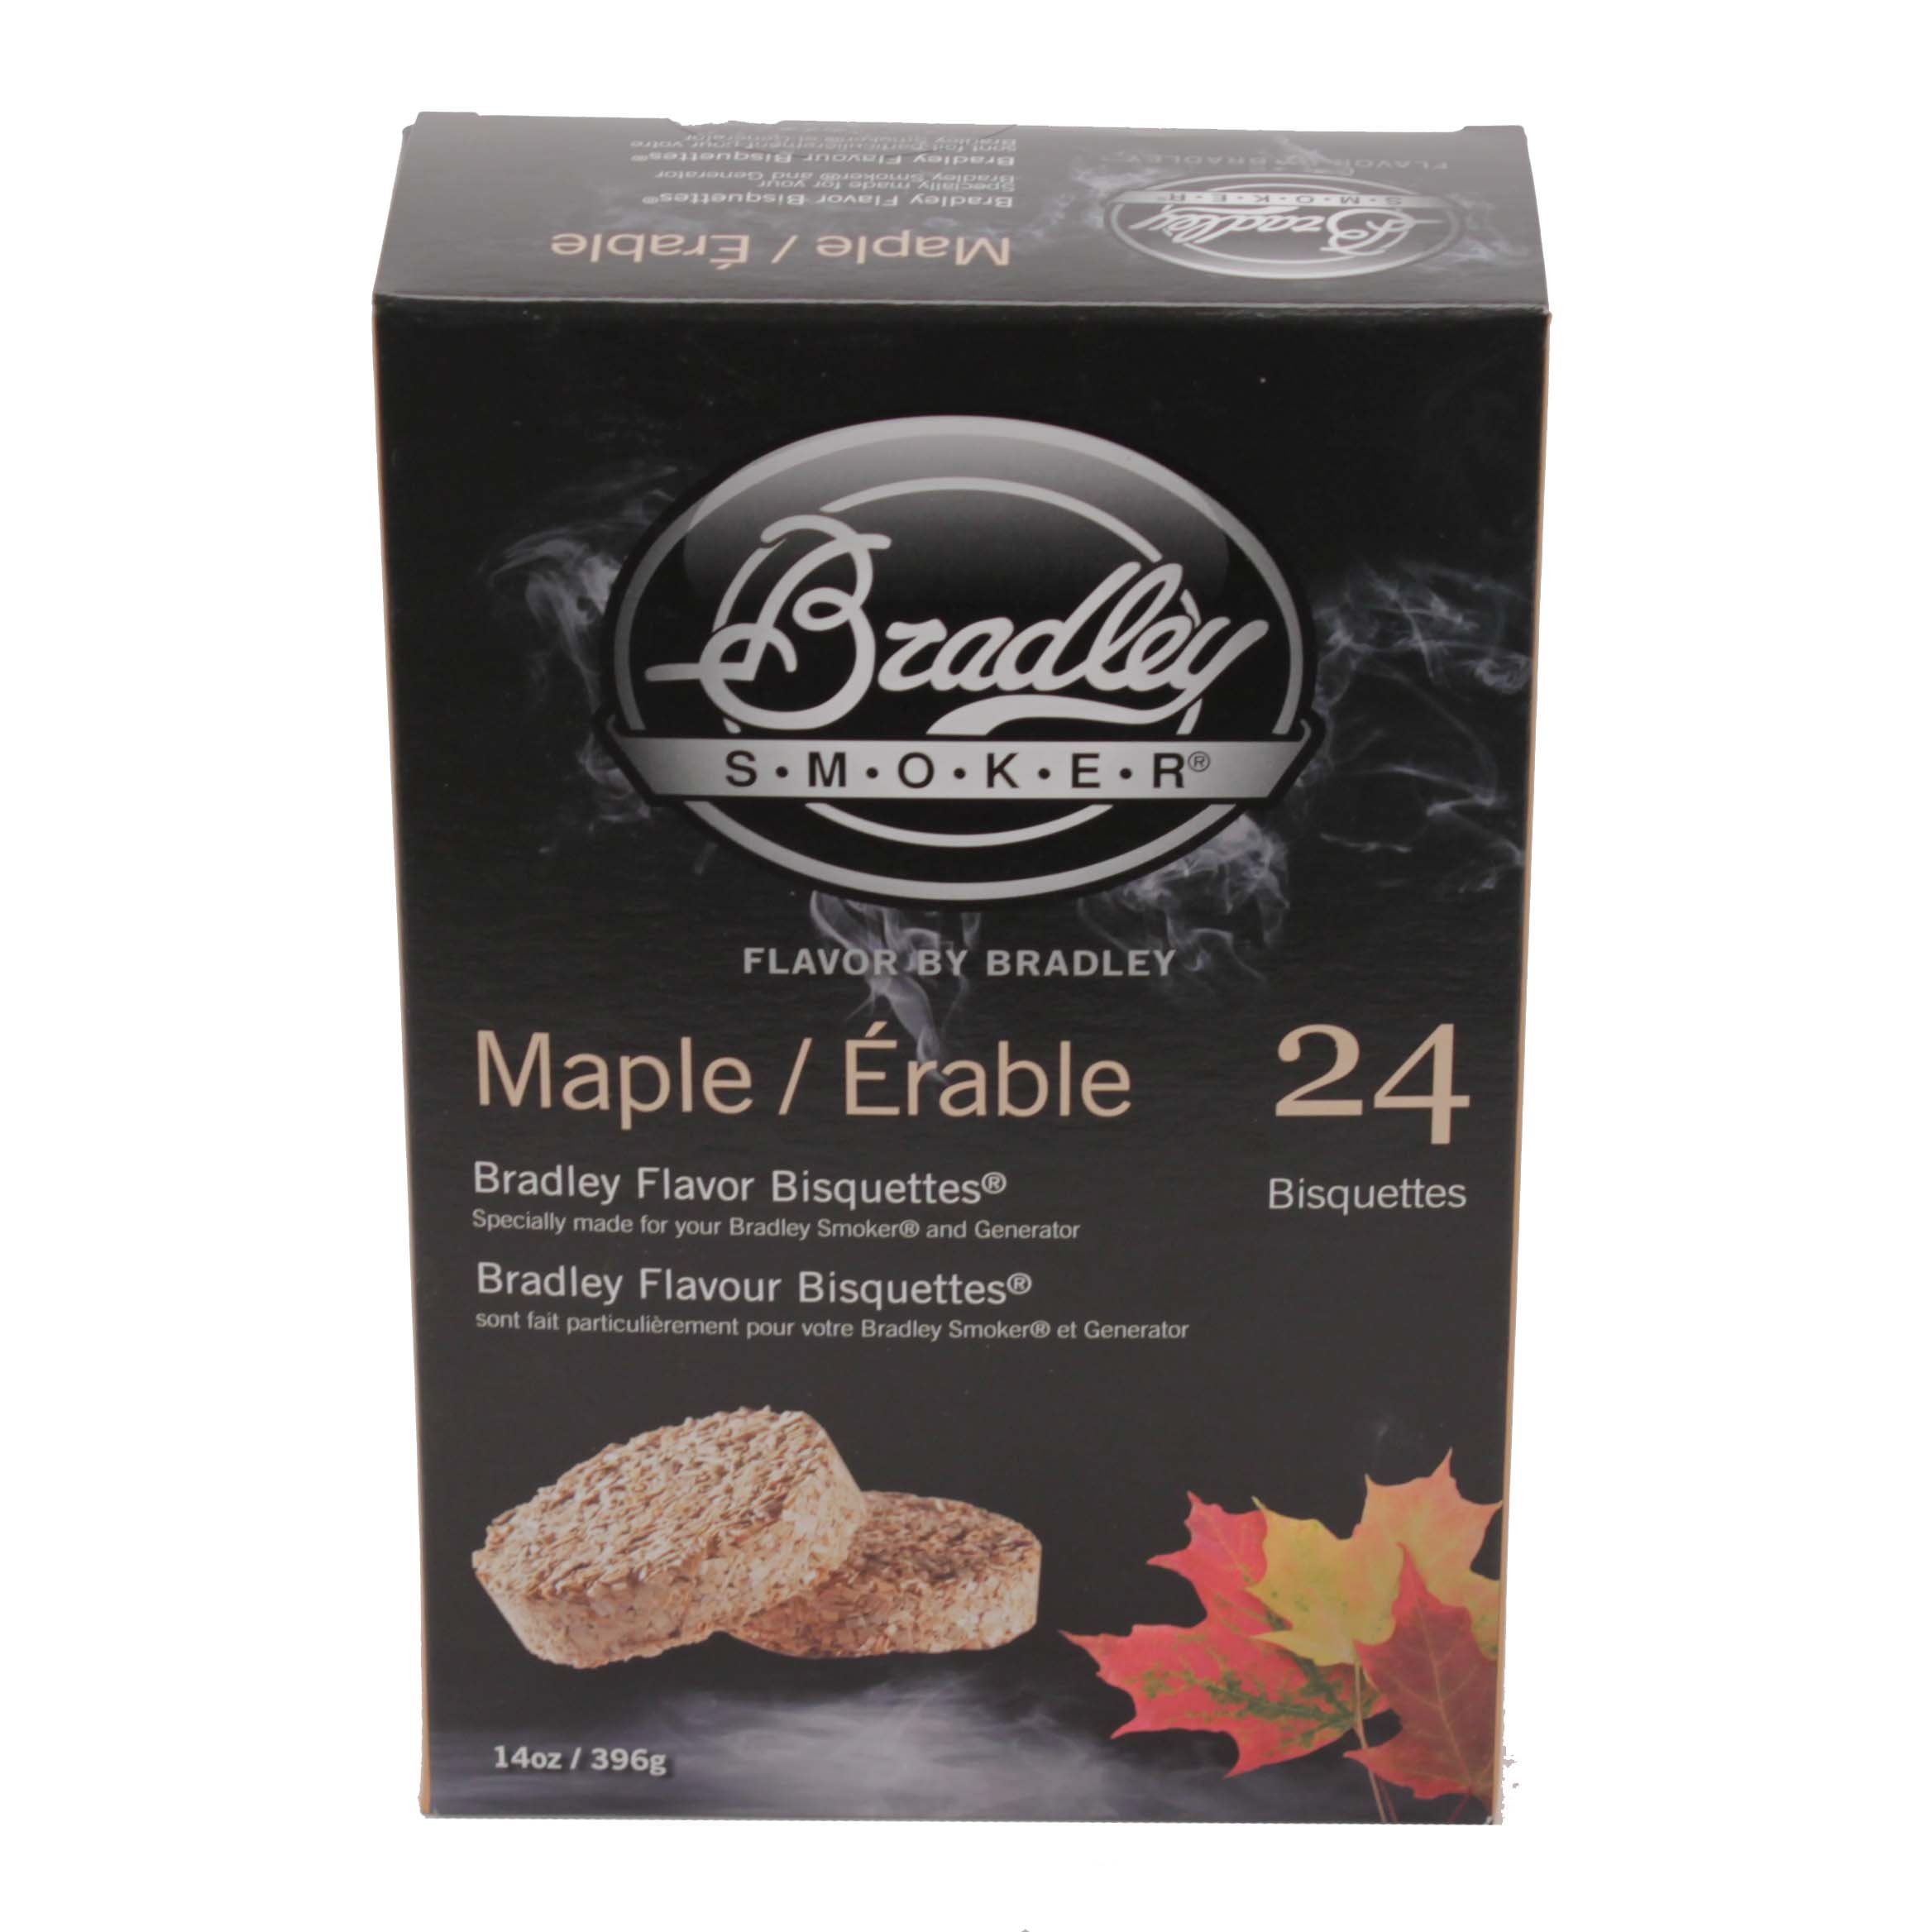 Bradley Smokers BTMP24 Maple Bisquettes Smoker, 24-Pack by Bradley Smoker